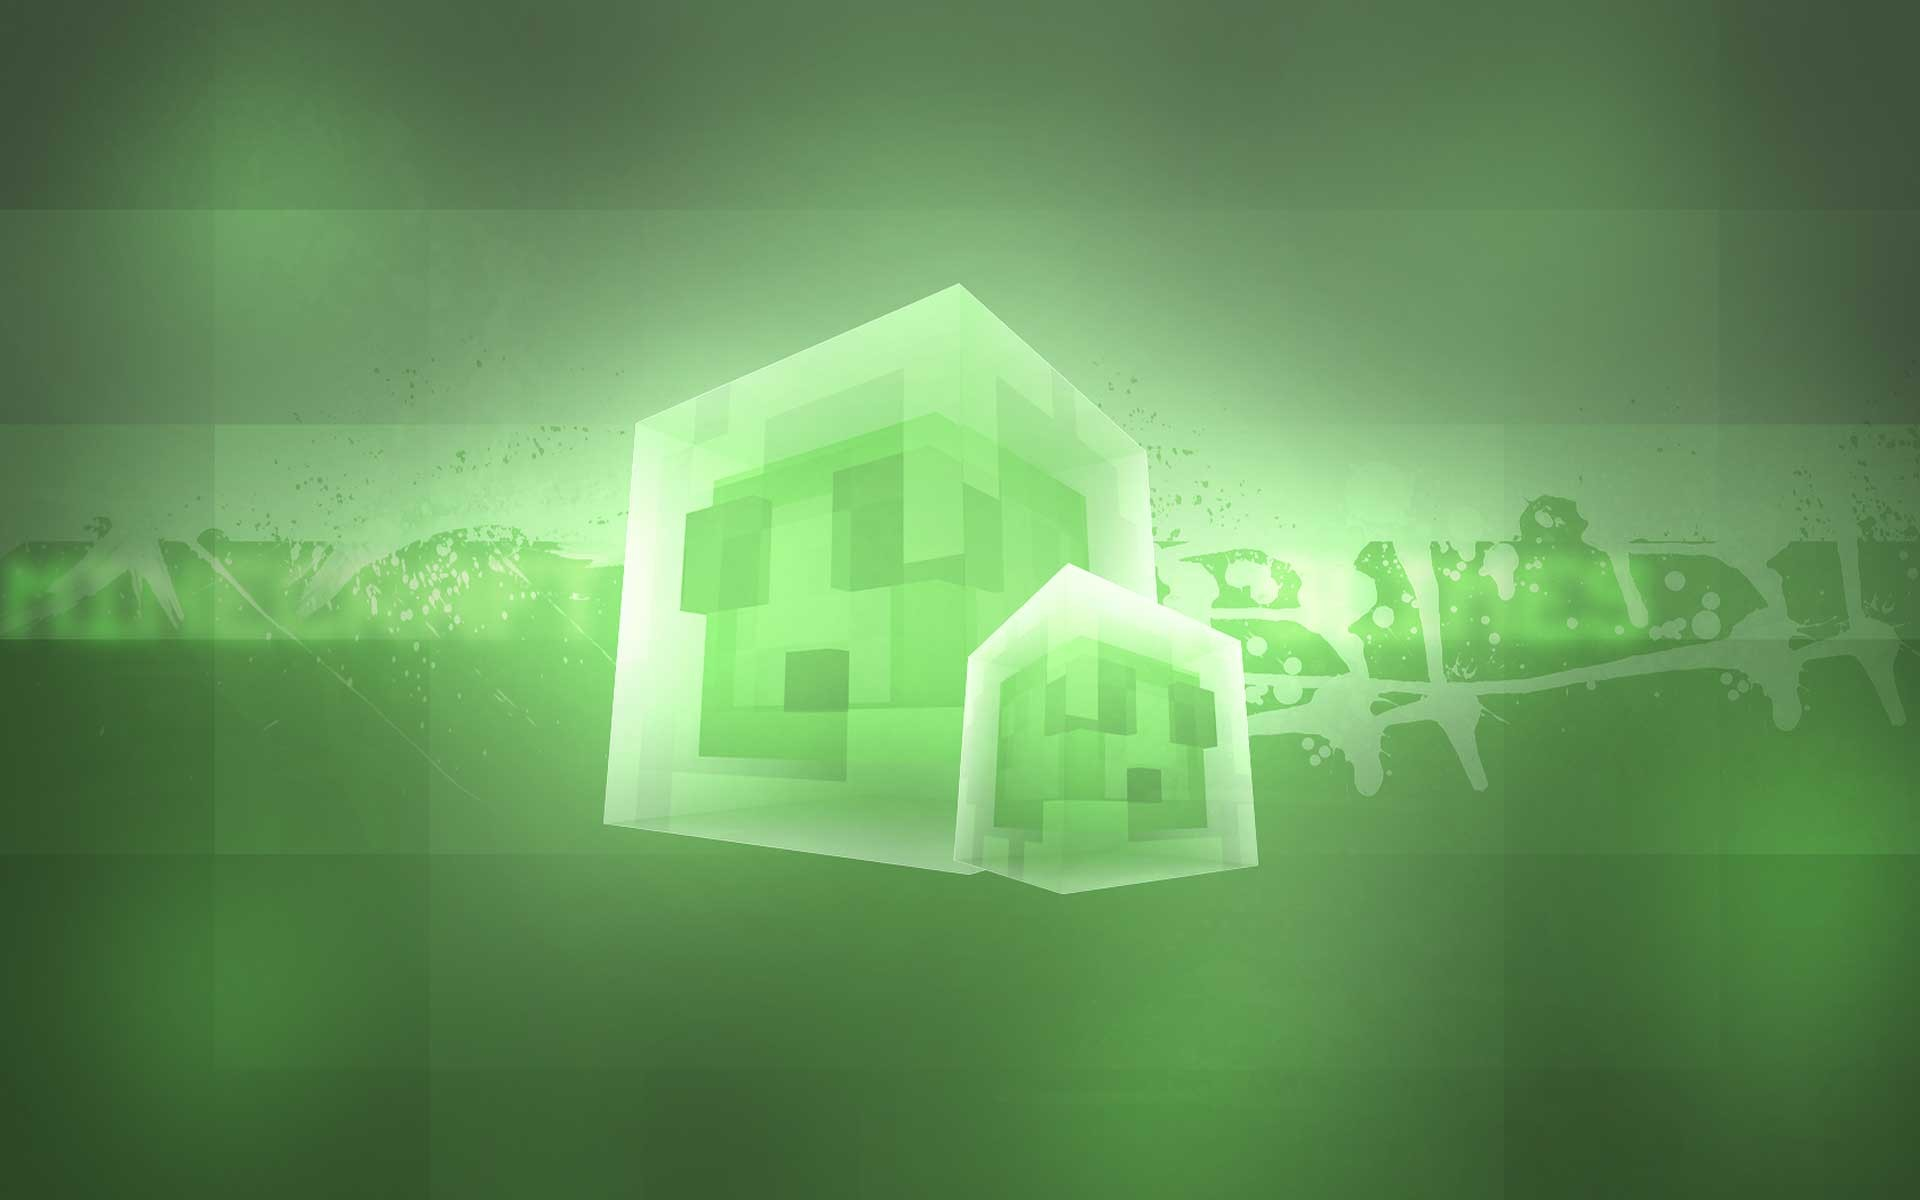 Cool Wallpaper Minecraft Android - 1041845-download-minecraft-creeper-wallpaper-1920x1200-for-android-50  Perfect Image Reference_508619.jpg